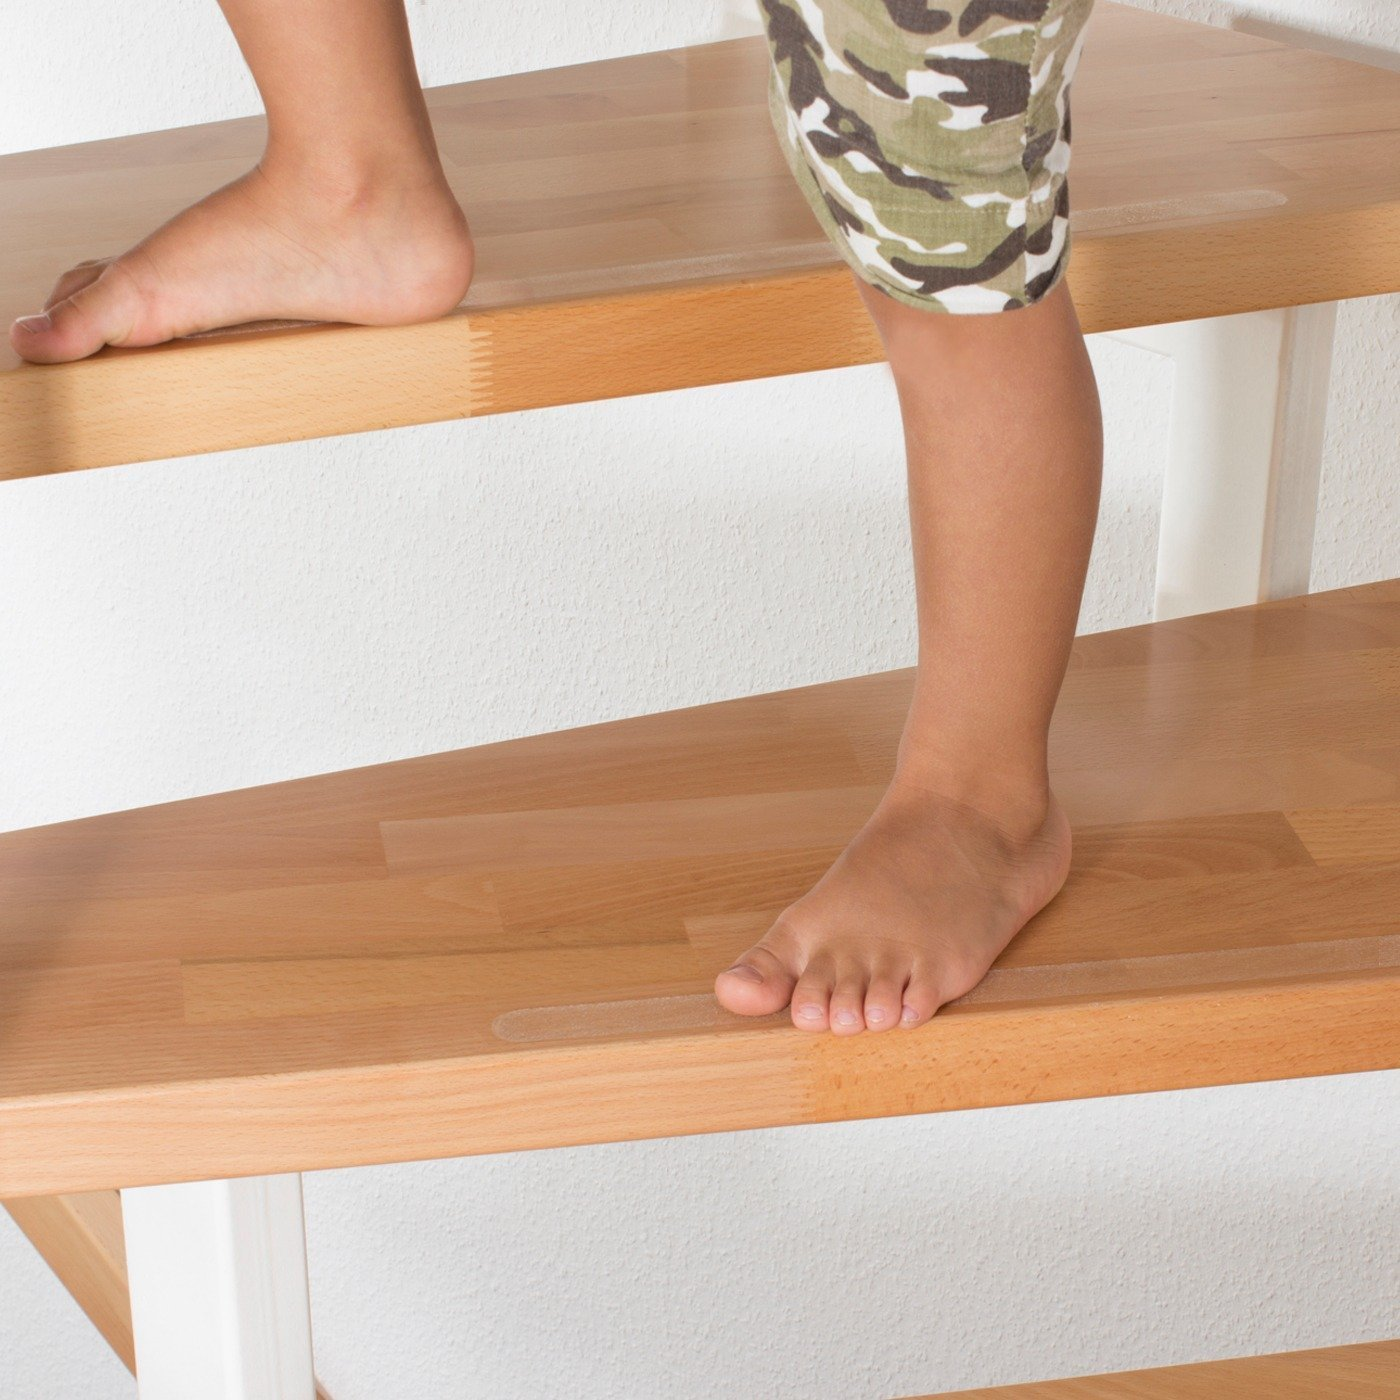 Keep your Family Baby Child Kids Elderly Safe from Slips Non Slip Stair Clear Discreet Safety Grip Strips -SLIPS AWAY/® Strong Textured Adhesive Sticker Tape Treads Perfect for Stairs Step Laminate Wooden Floor Hallway HIGHEST QUALITY